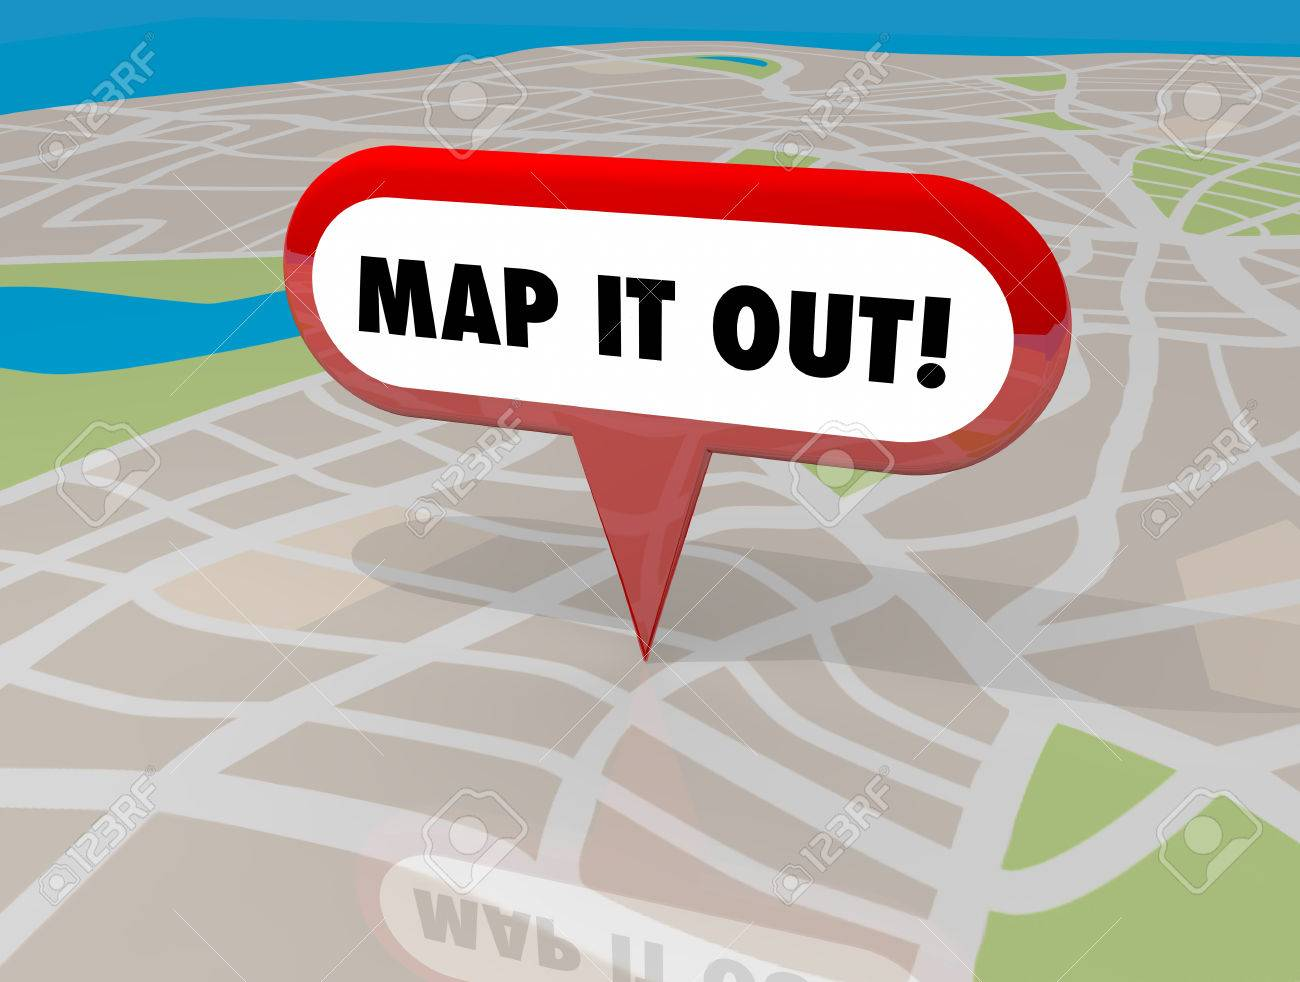 Map It Out Map It Out Pin Words Location Navigation 3d Illustration Stock